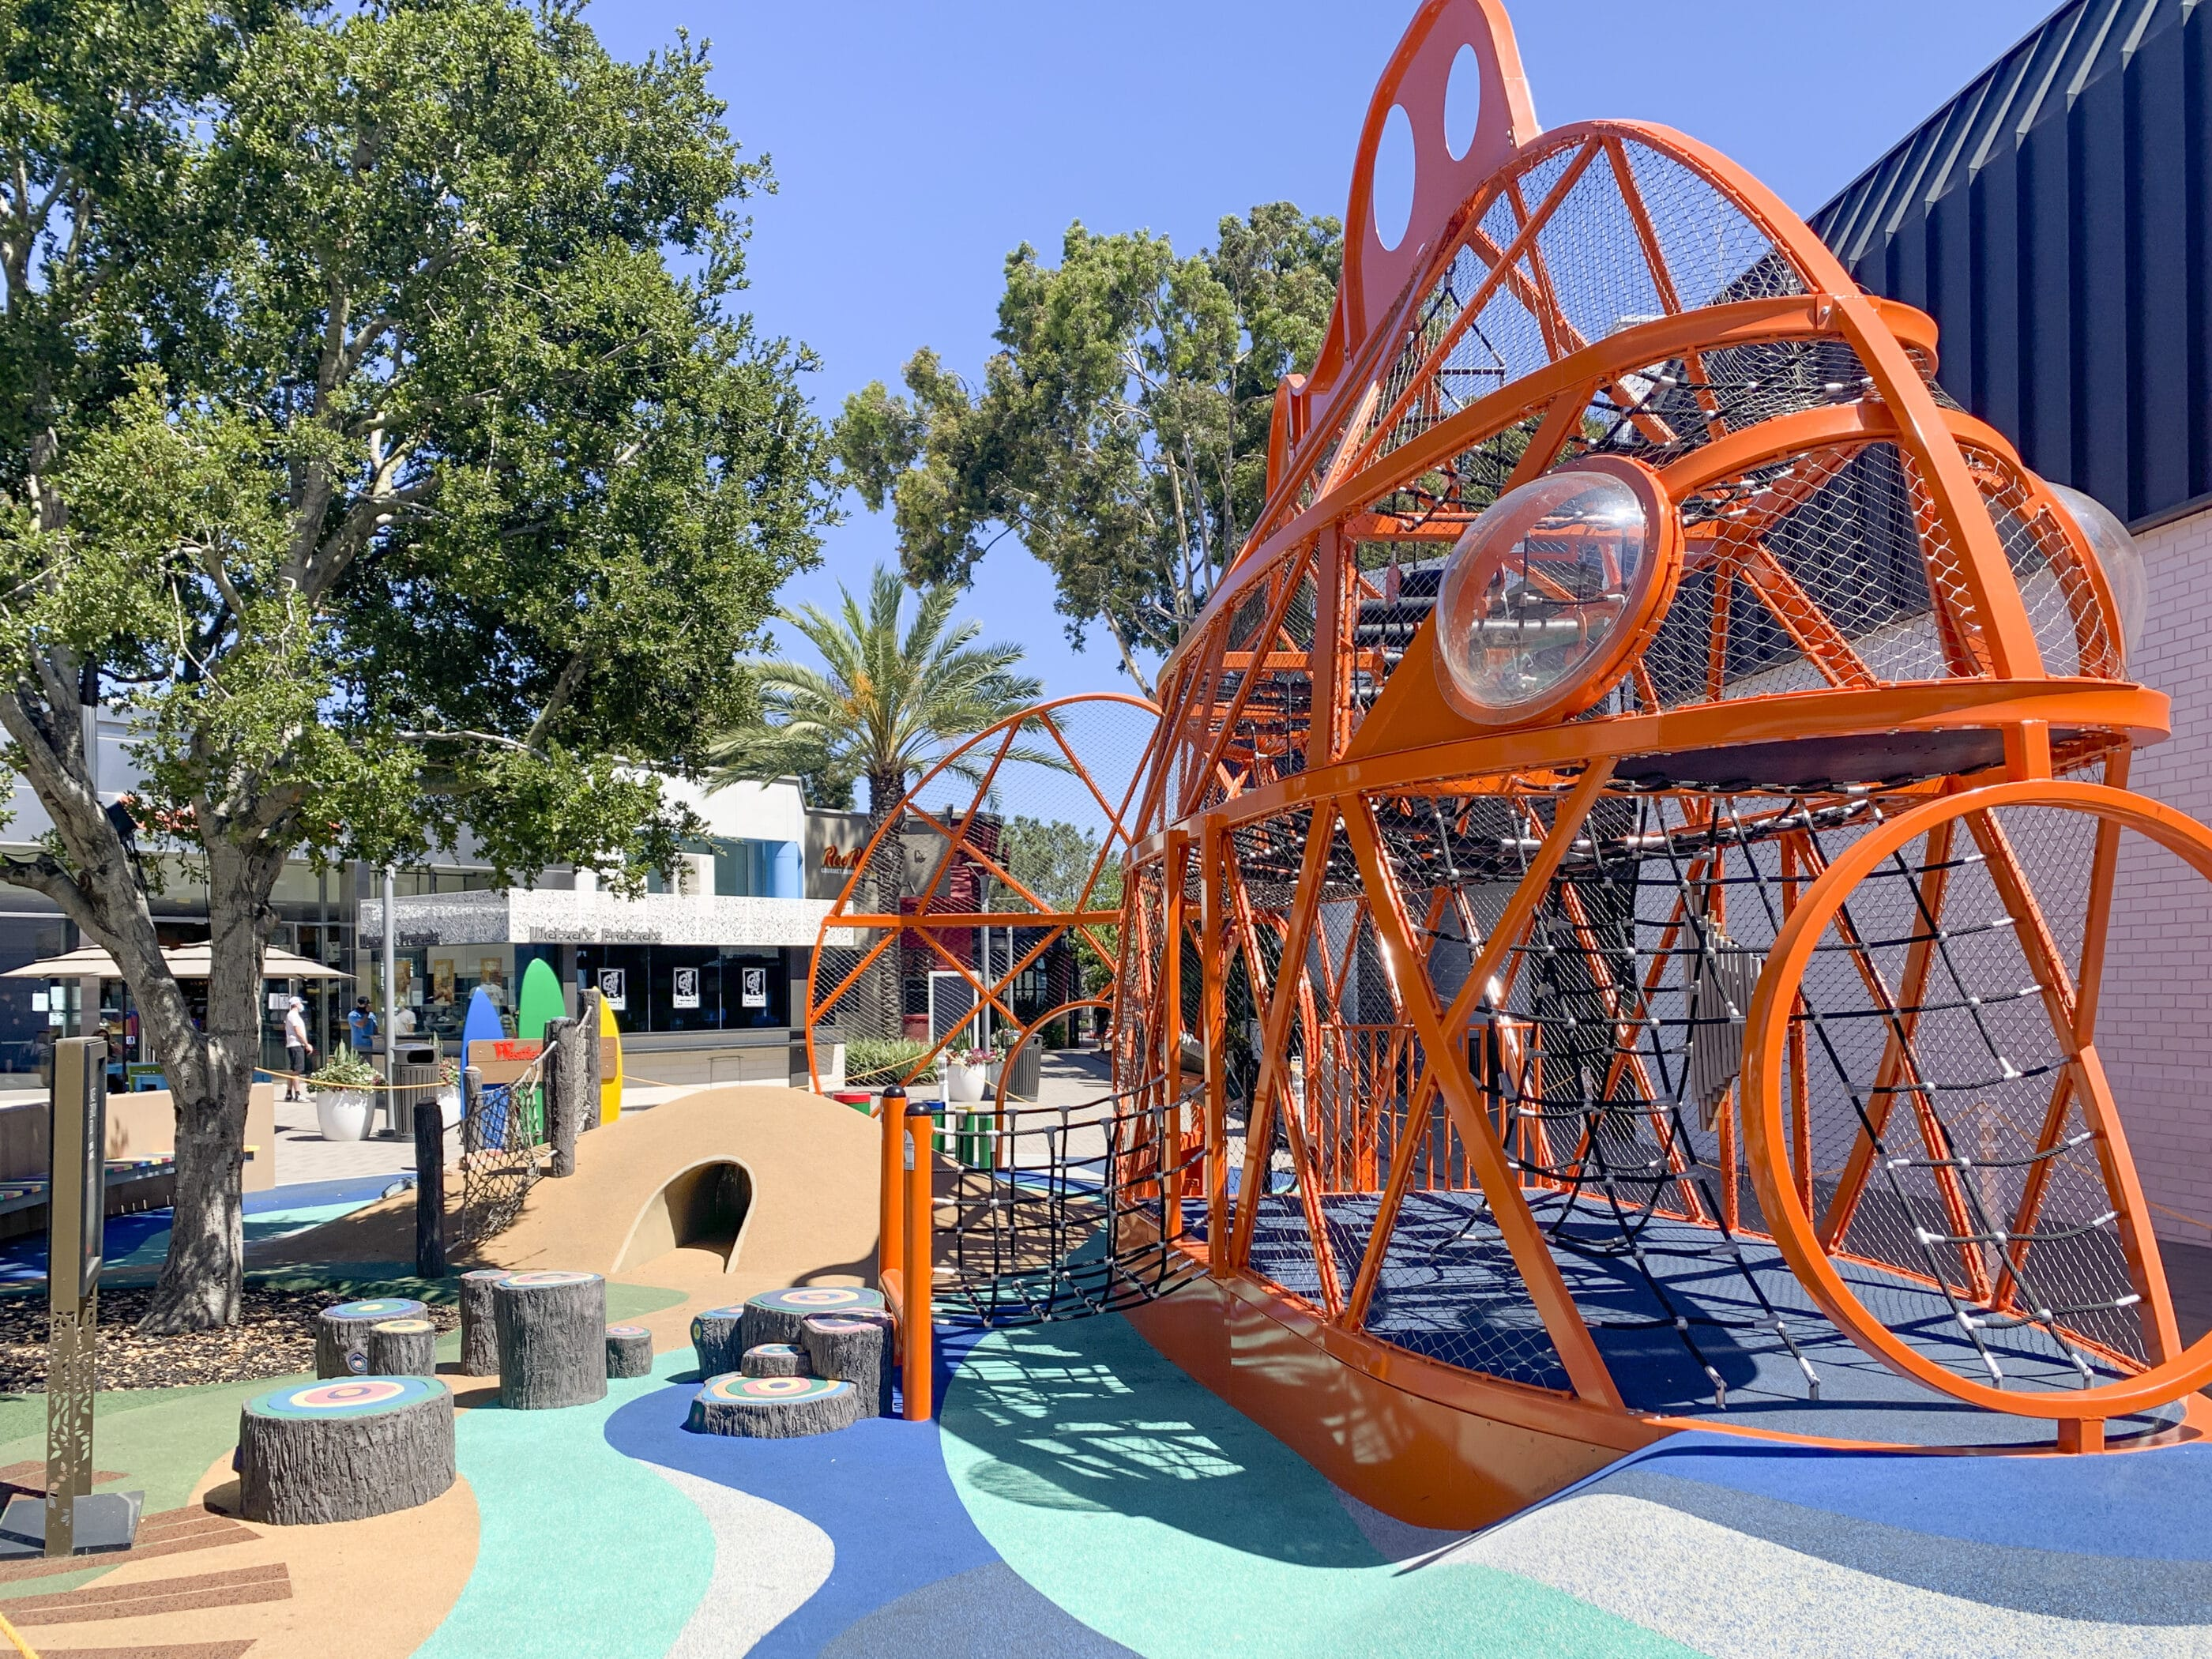 The sea creature play structure and surrounding play area for kids near Macy's at Westfield UTC mall in La Jolla.